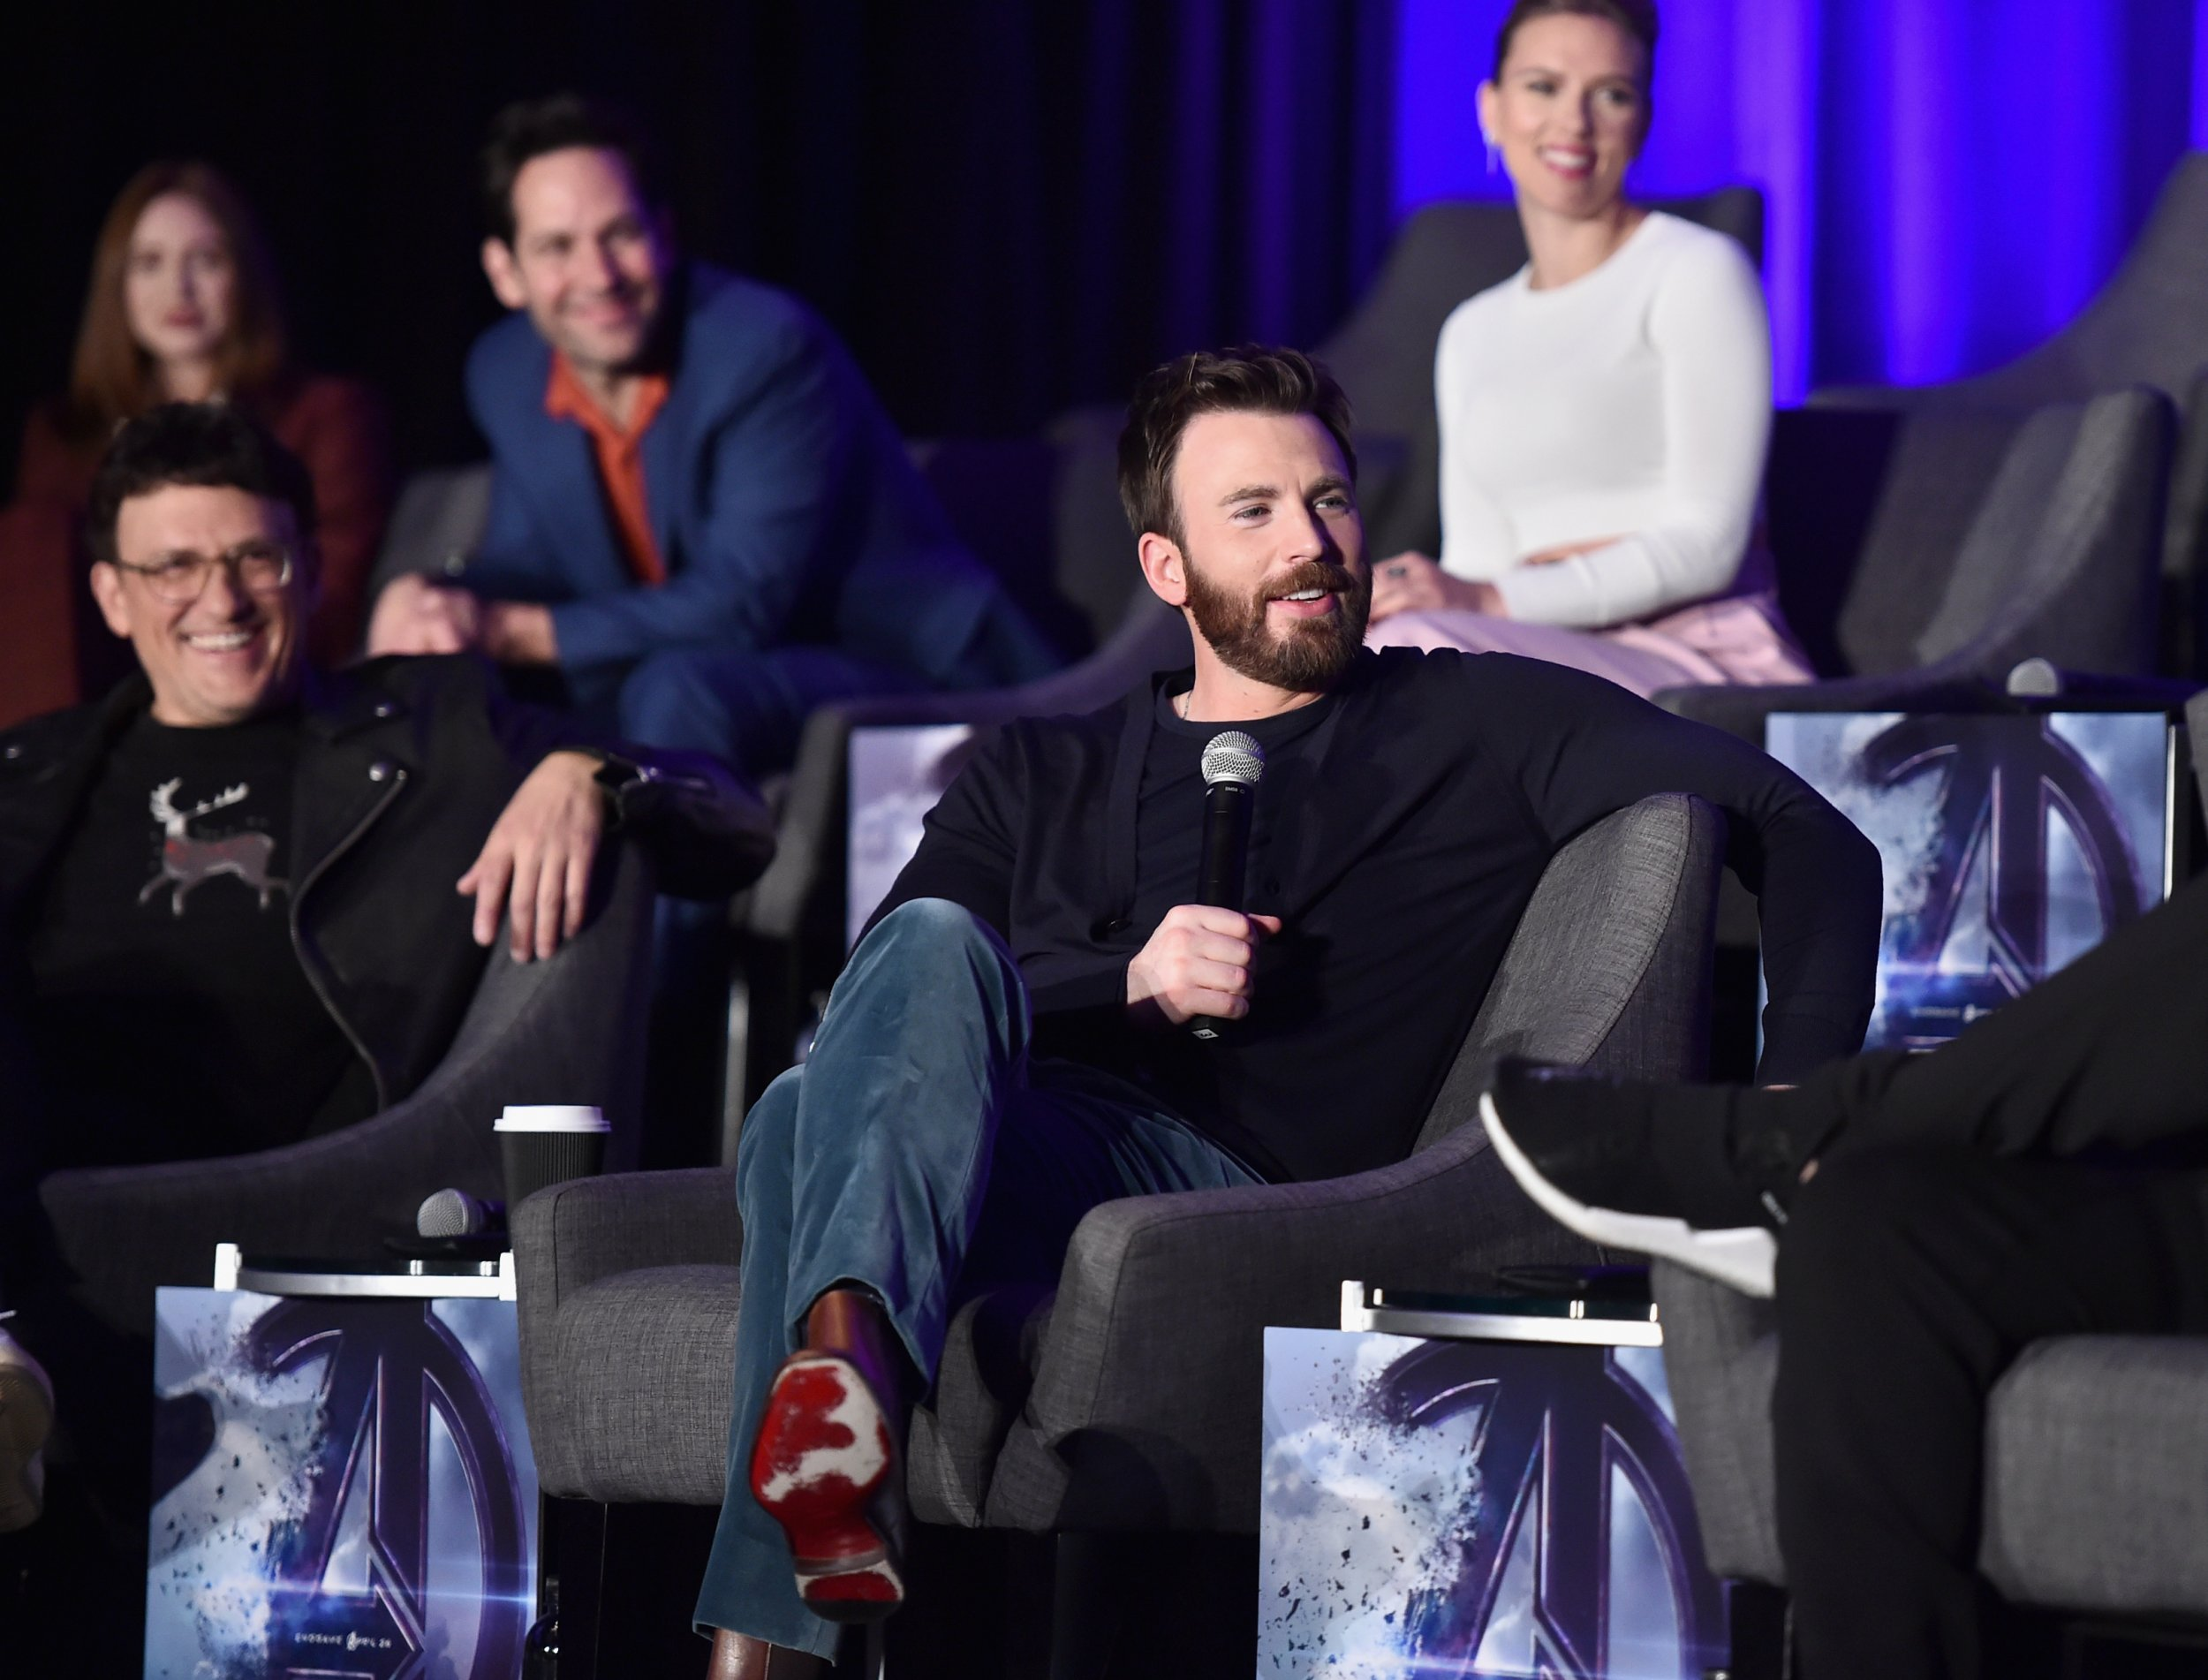 Chris Evans Almost Spoils Captain America Fate During 'Avengers: Endgame' Press Conference